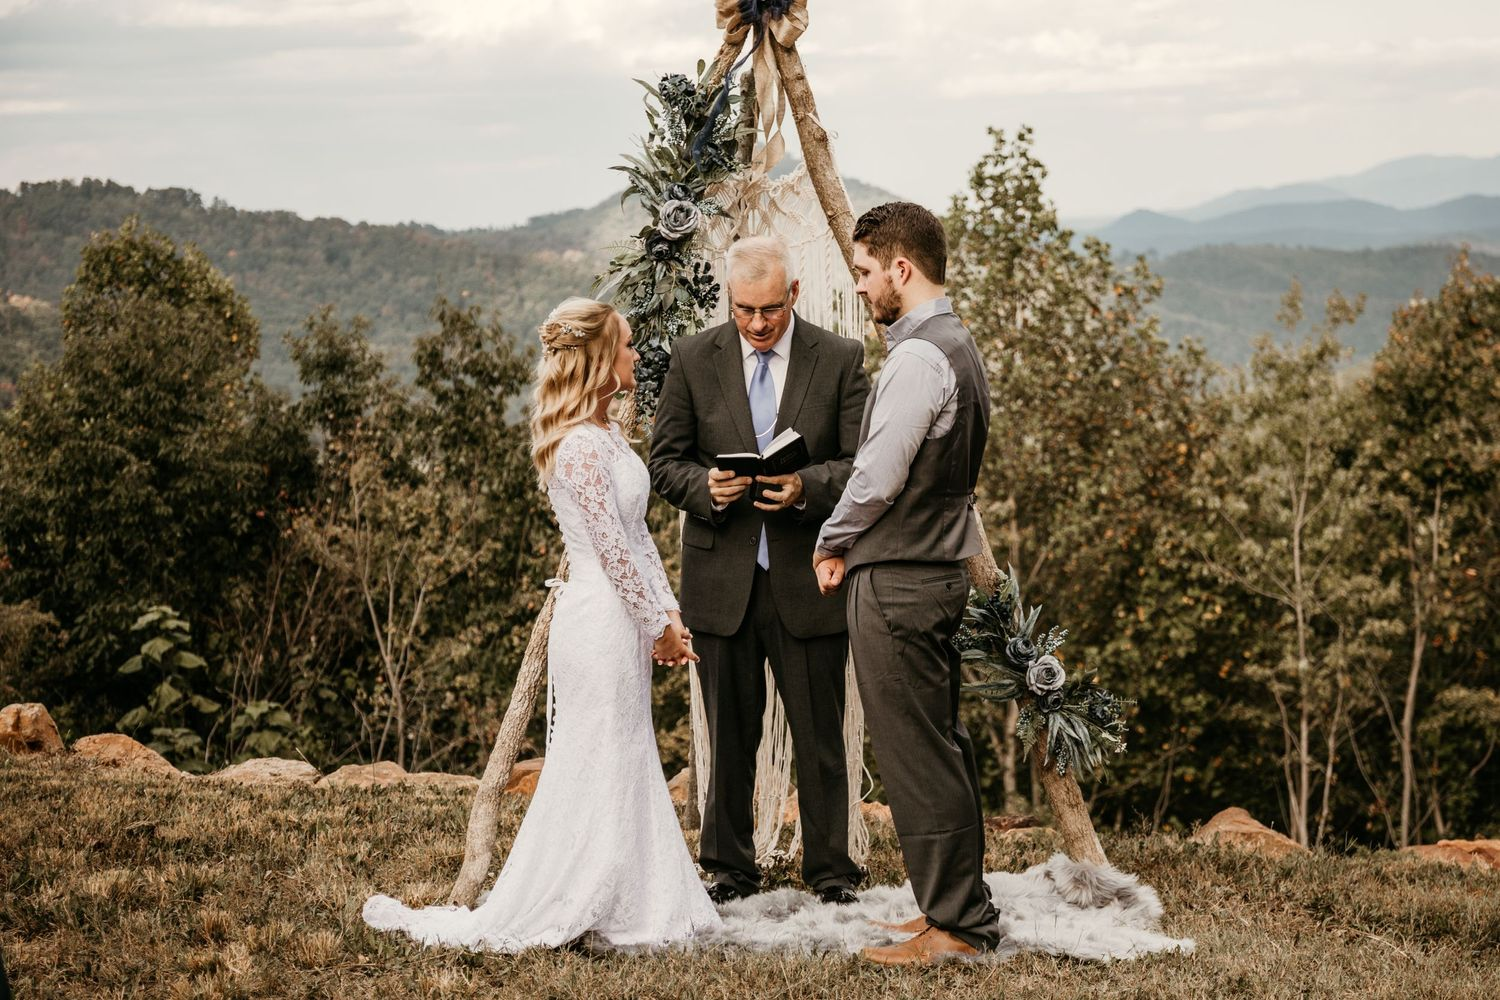 stone mountain elopement, mountain wedding, stone mountain, elopement photographer, NC elopement, NC mountain wedding,